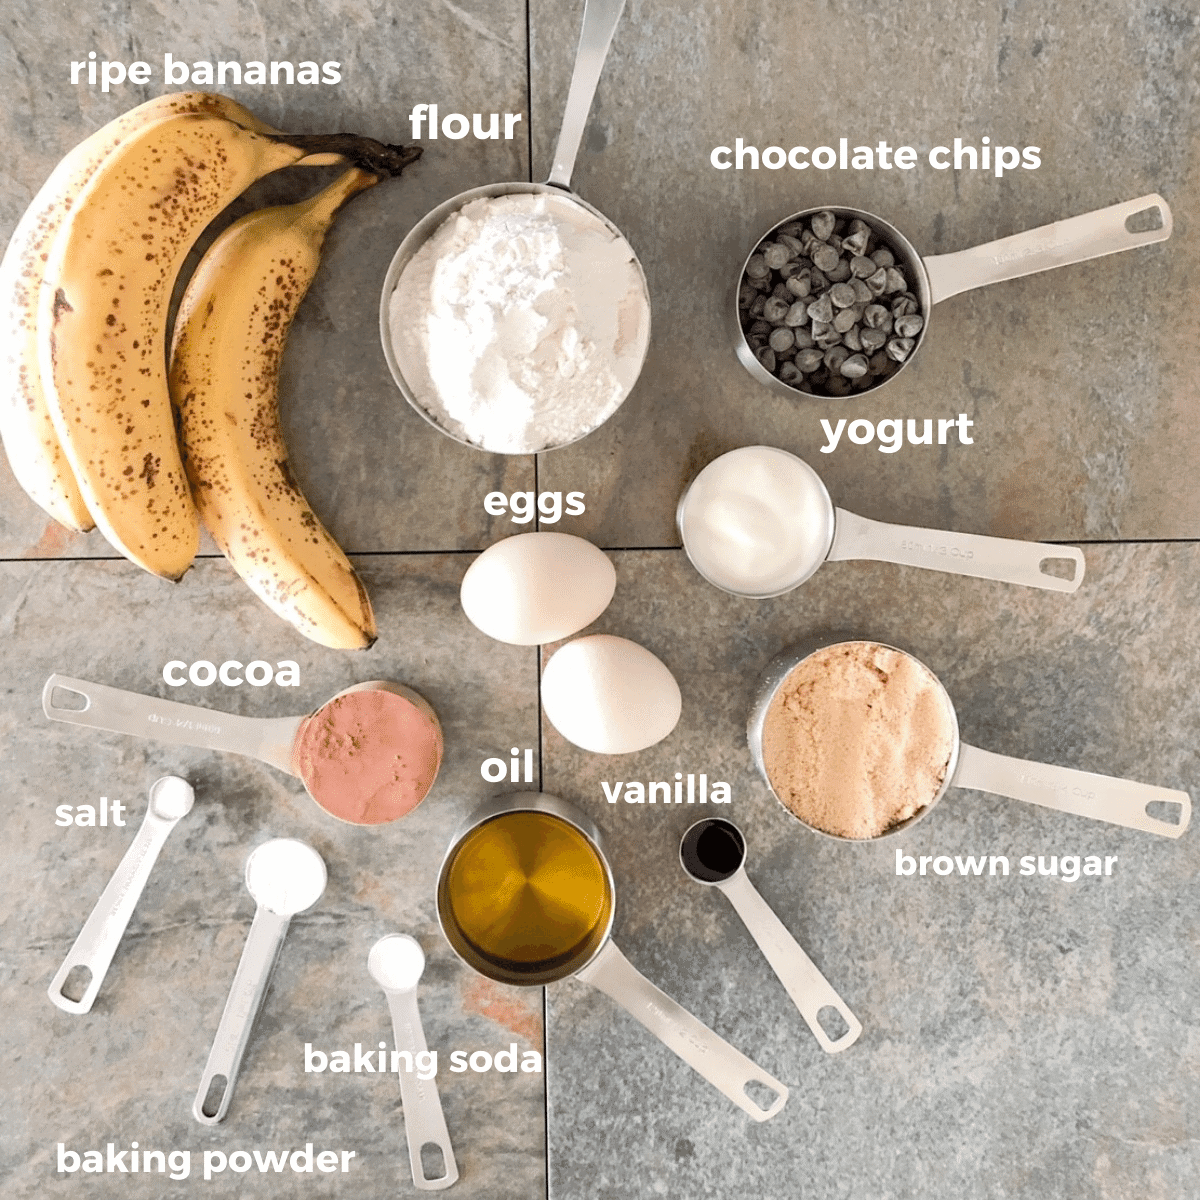 Ingredients for the banana chocolate chip muffins laid out in measuring cups and spoons